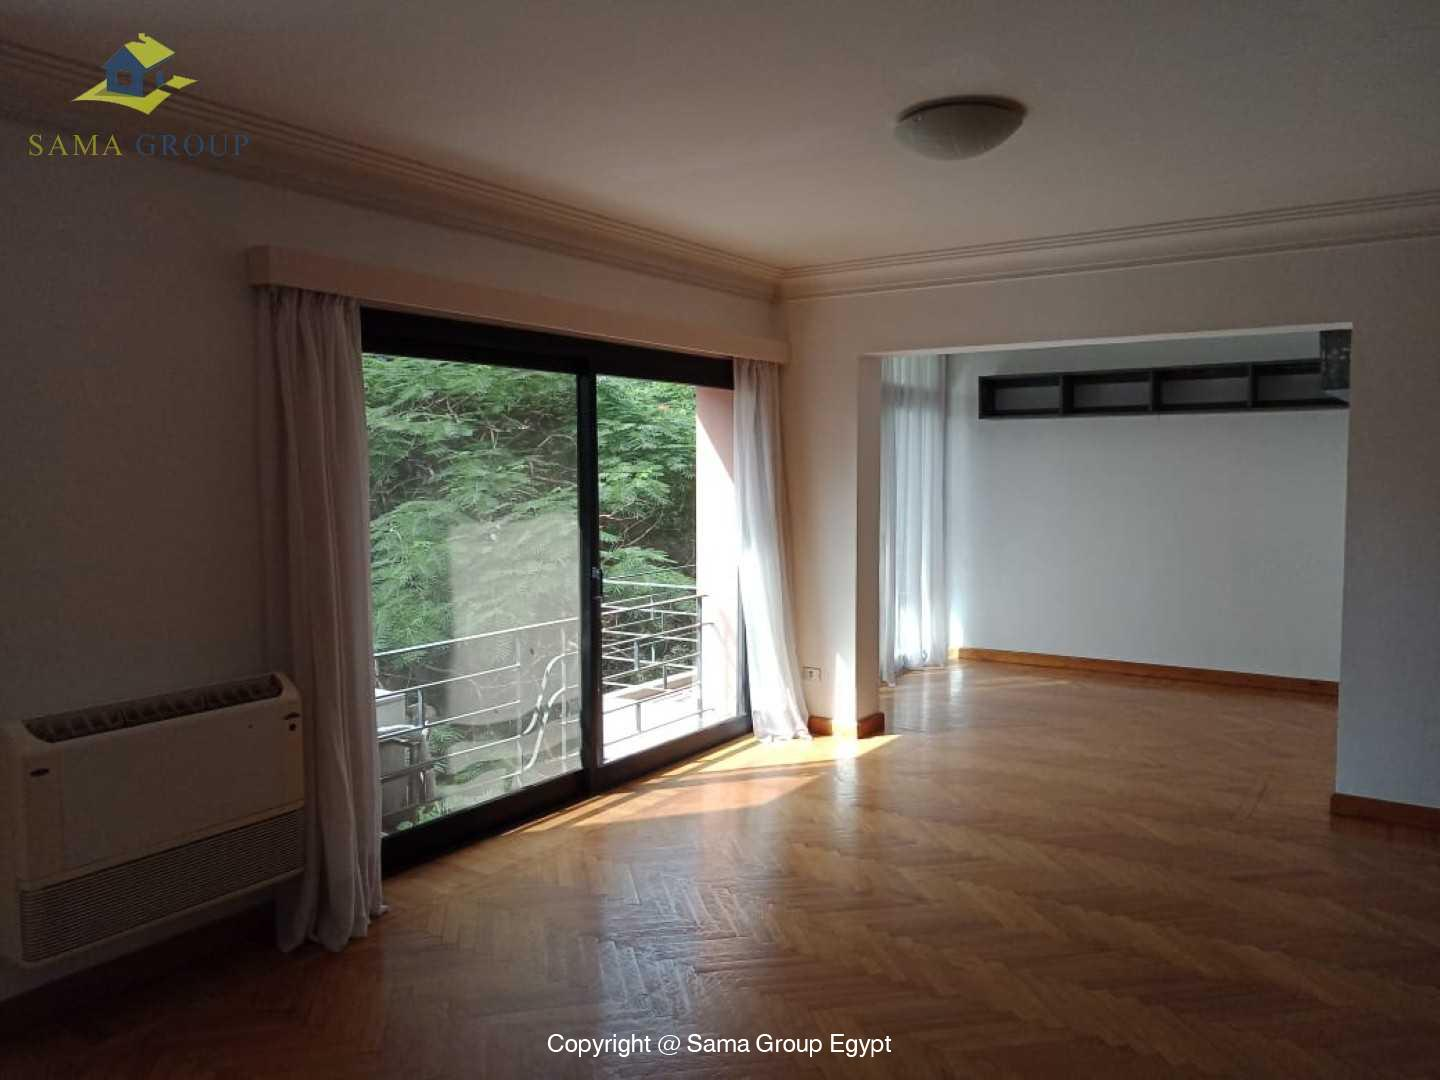 Semi Furnished Apartment For Rent In Maadi Sarayat,Semi furnished,Apartment NO #10